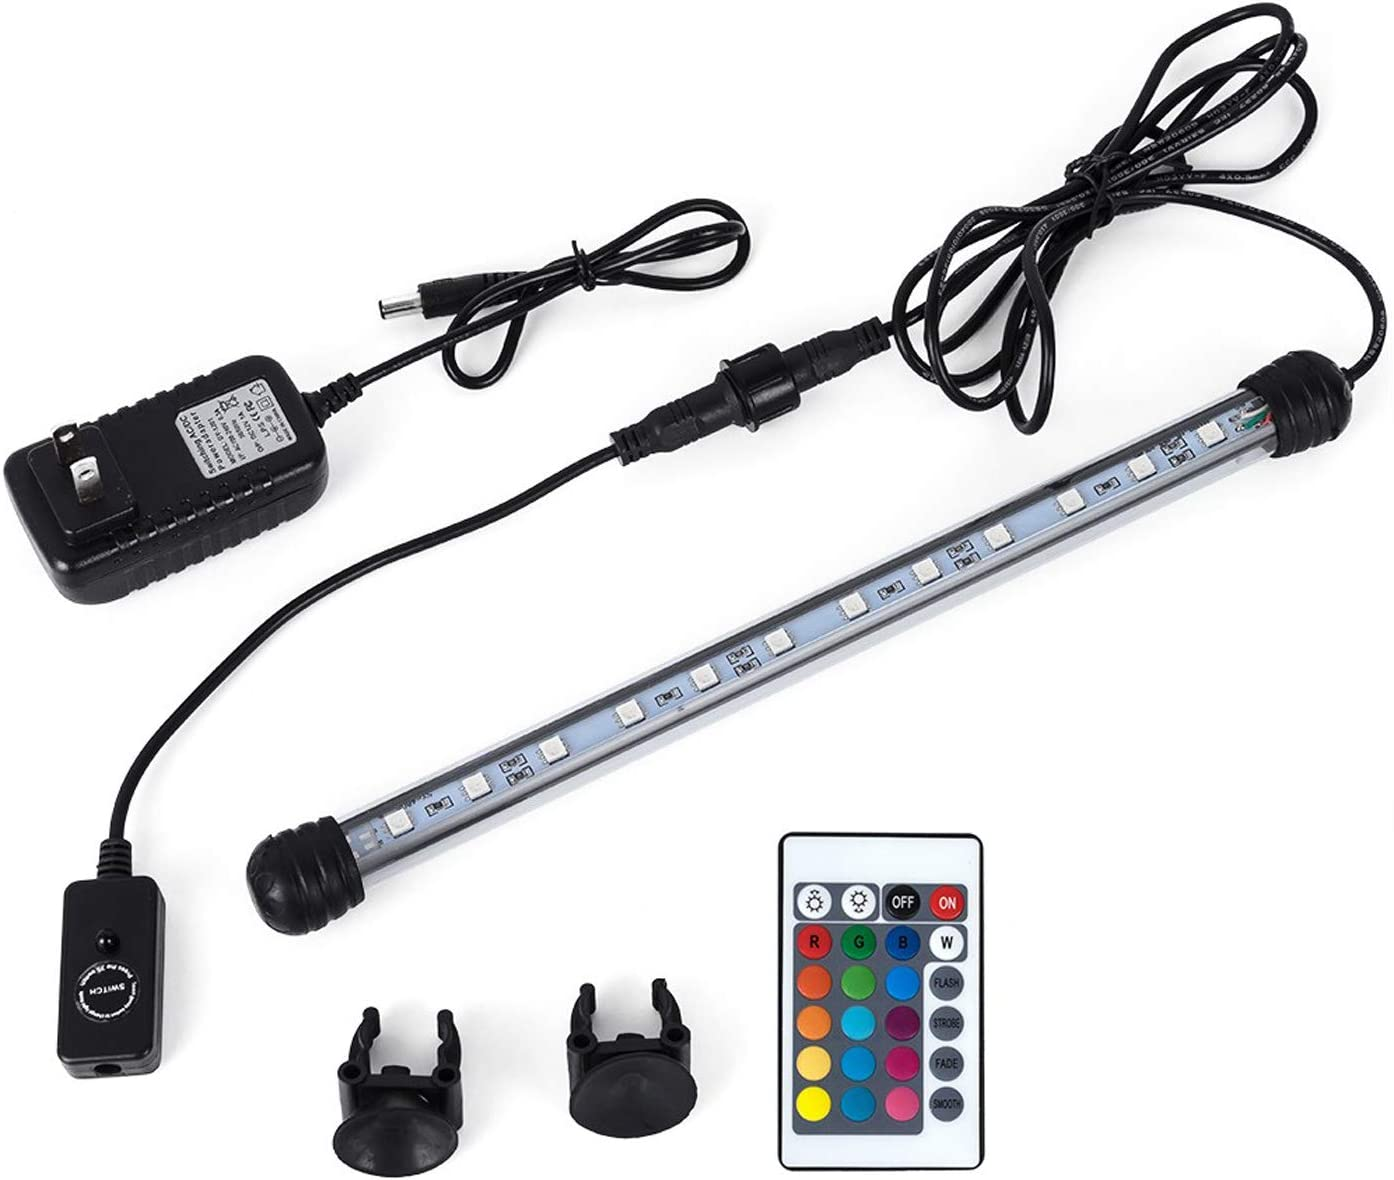 MQ 8-20 in Submersible LED Aquarium Light, Color Changing Fish Tank Light with Remote Control, IP68 Crystal Glass LED Lights Bar, for Fish Tank 10-35 inch